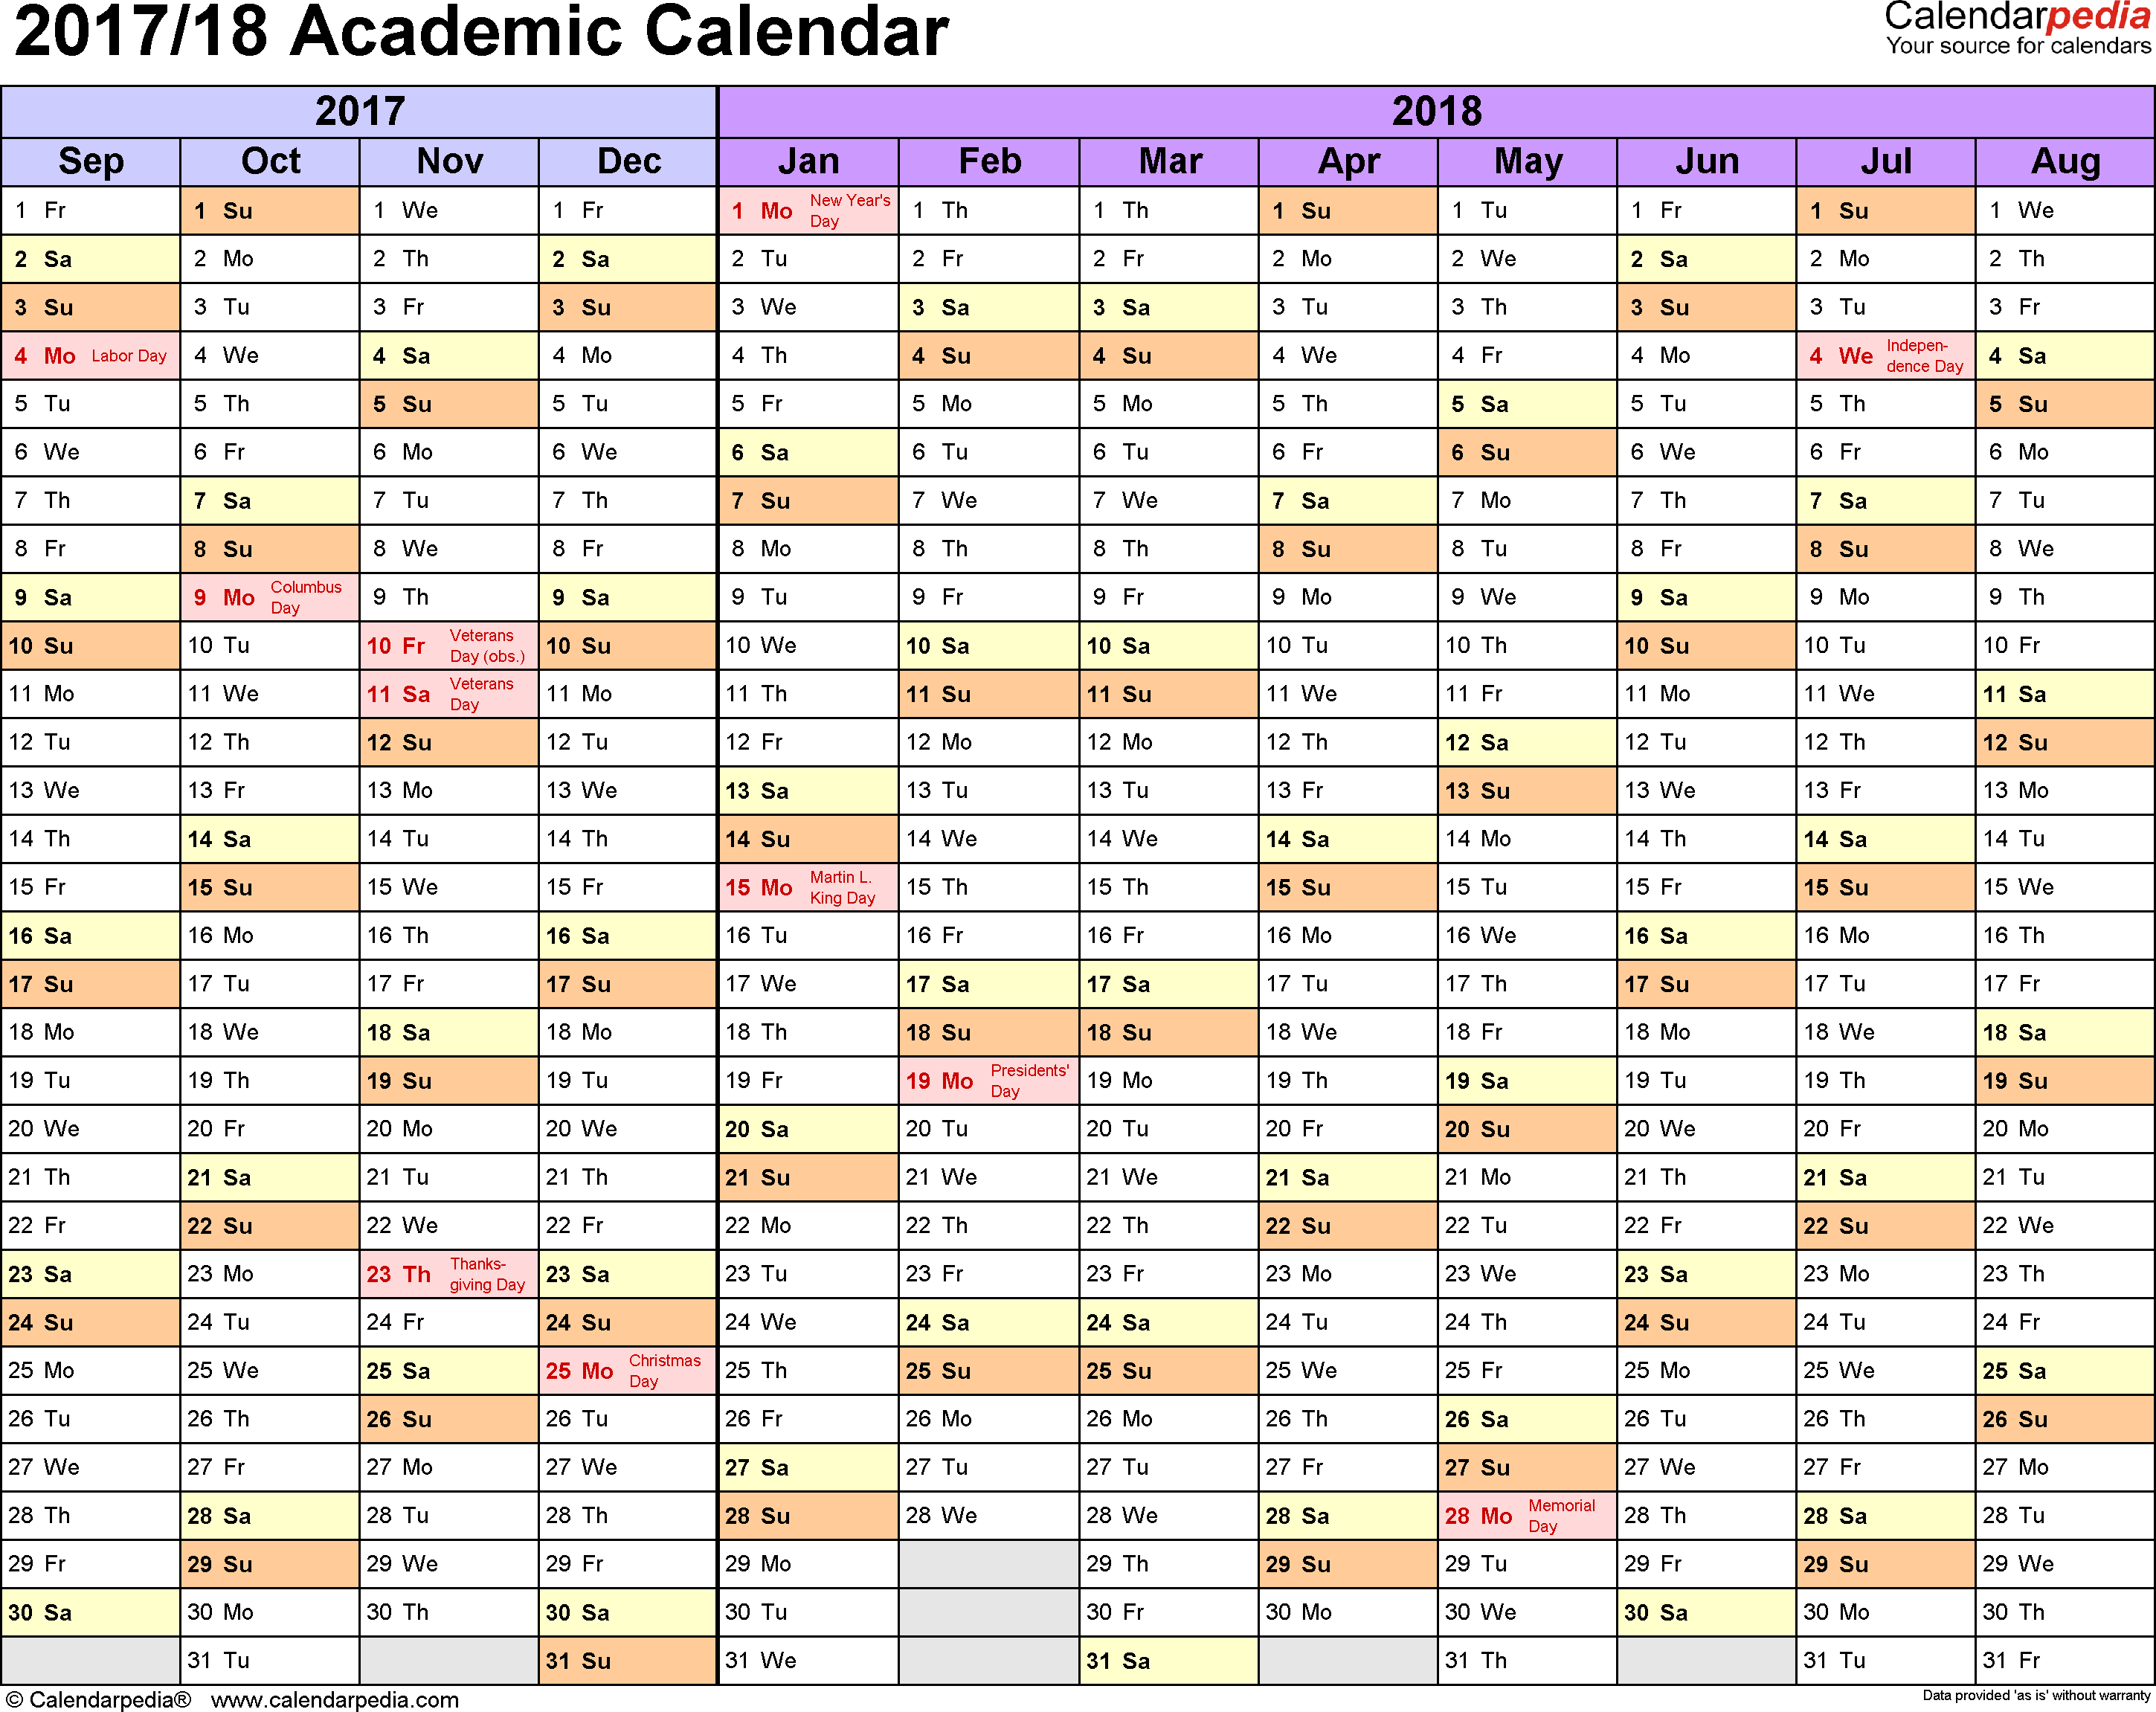 Template 1: Academic calendar 2017/18 for PDF, landscape orientation, months horizontally, 1 page